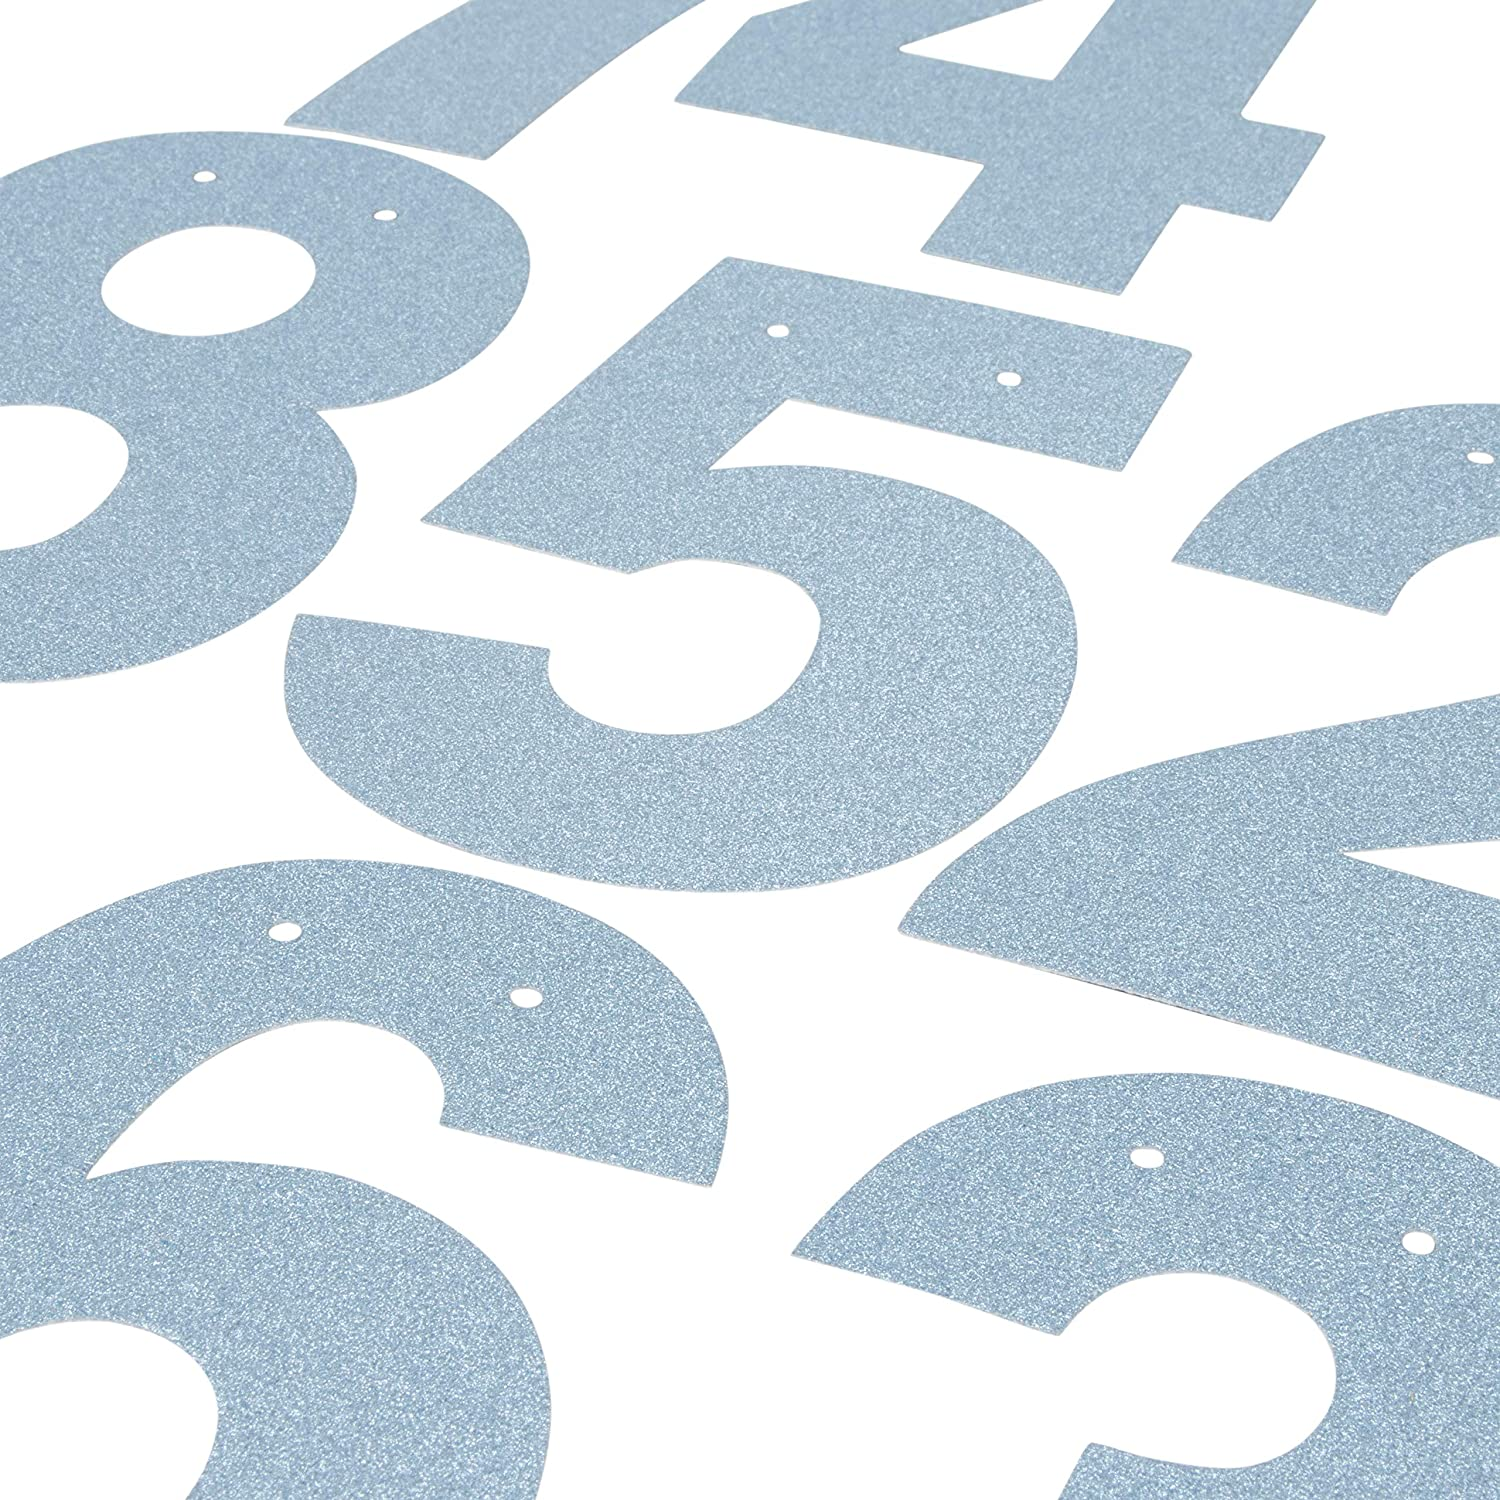 Party Decoration Supplies Numbers 125-Piece Customizable Banner Letters and Symbols Blue Glitter DIY Letter Banner Make Your Own Banner for Birthdays and Weddings Custom Banner Kit